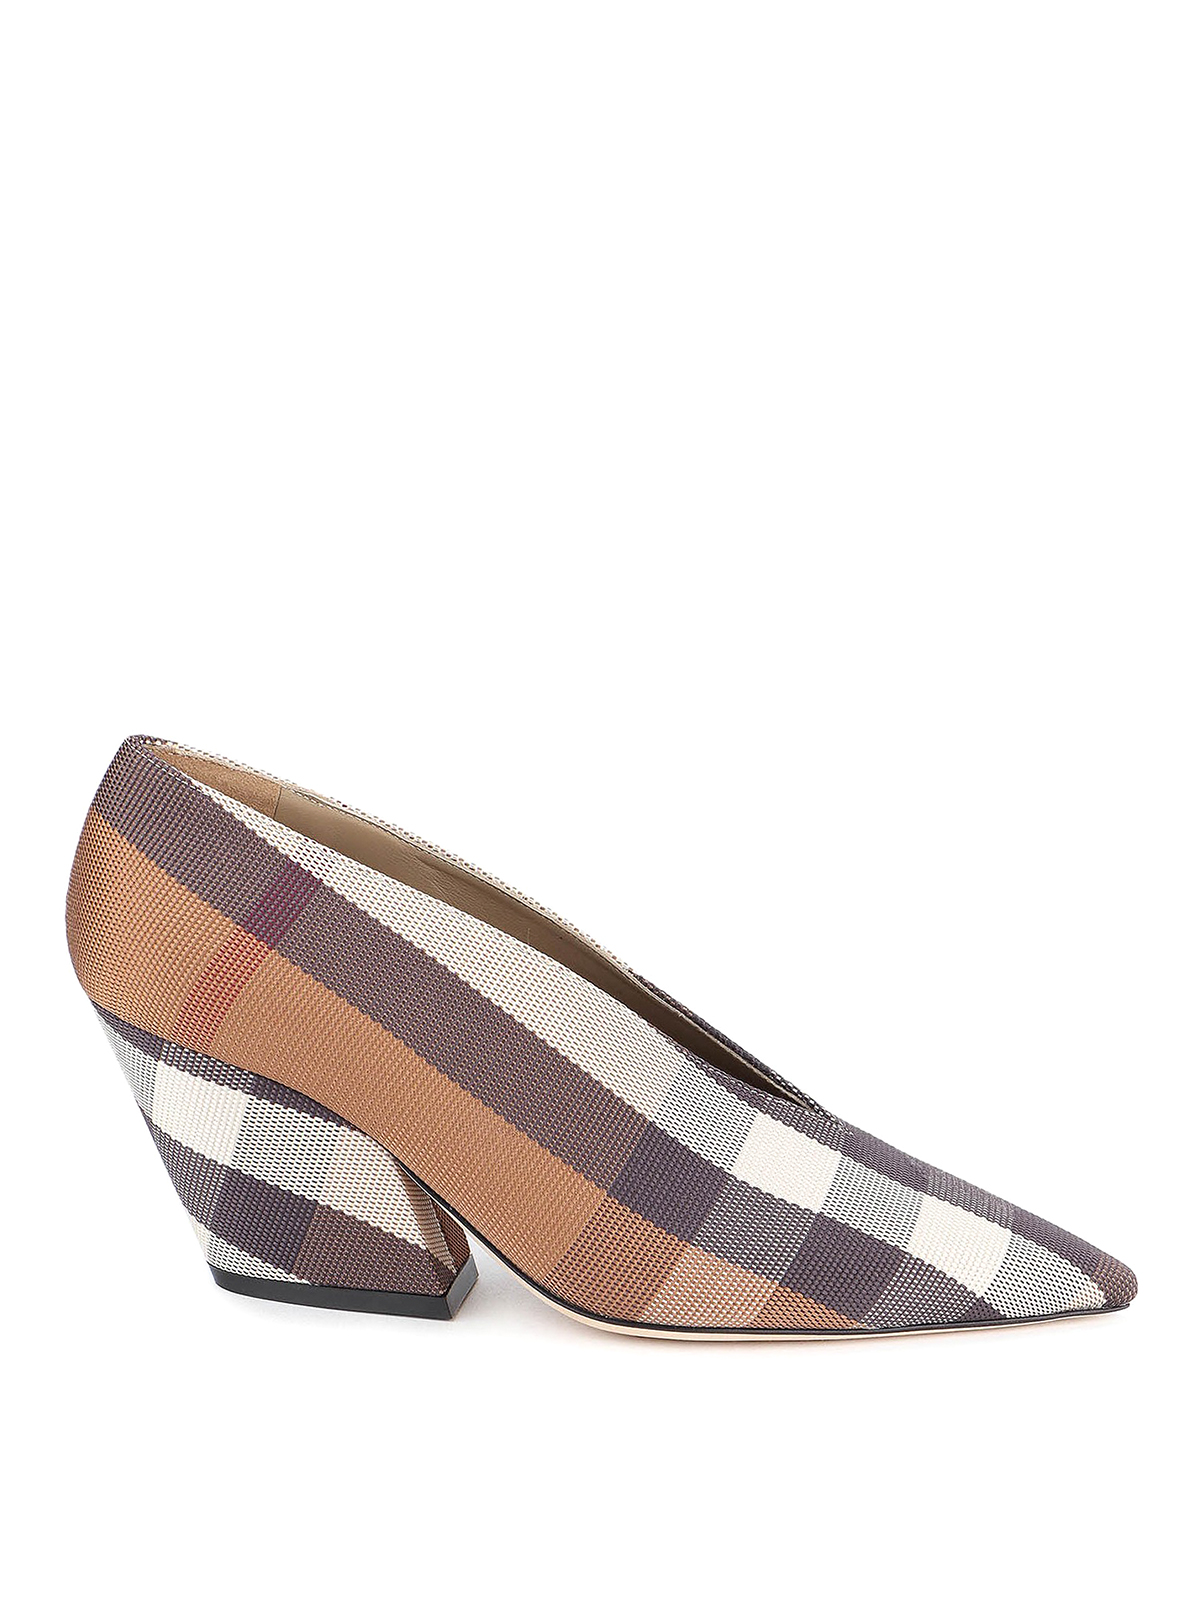 Burberry BRIERFIELD PUMPS